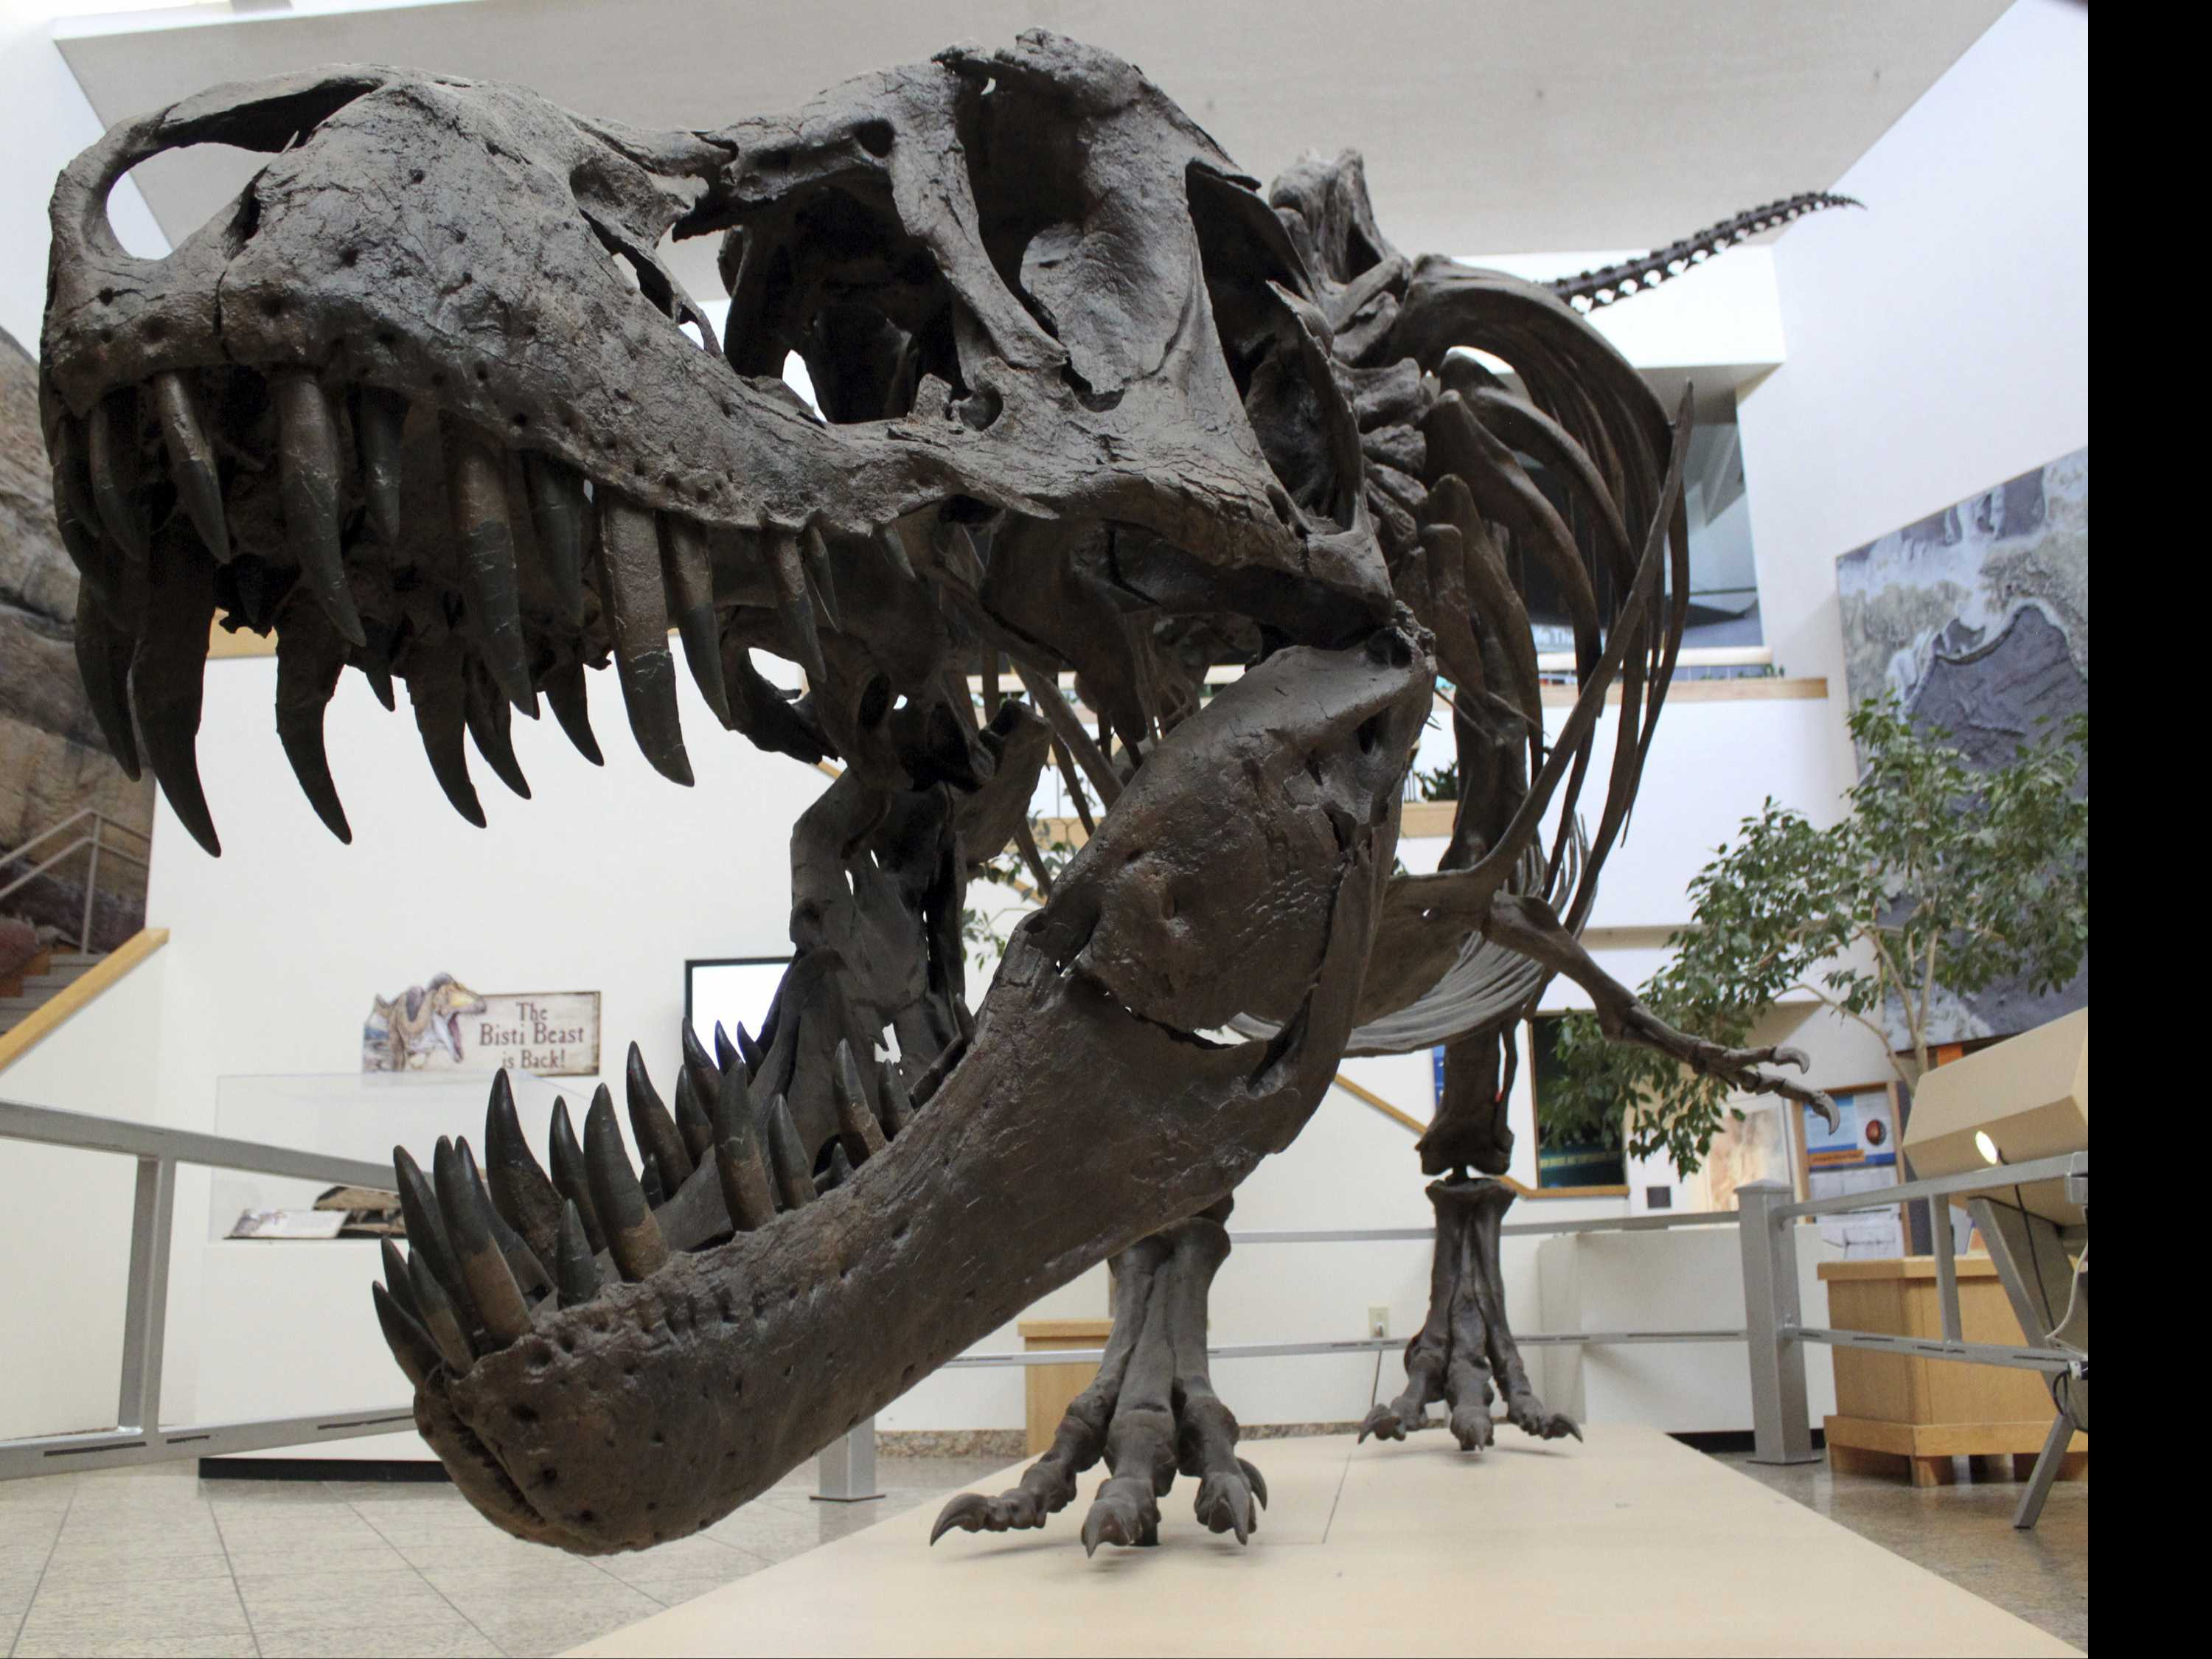 Neutron Beams, X-rays Reveal More About T. Rex Relative